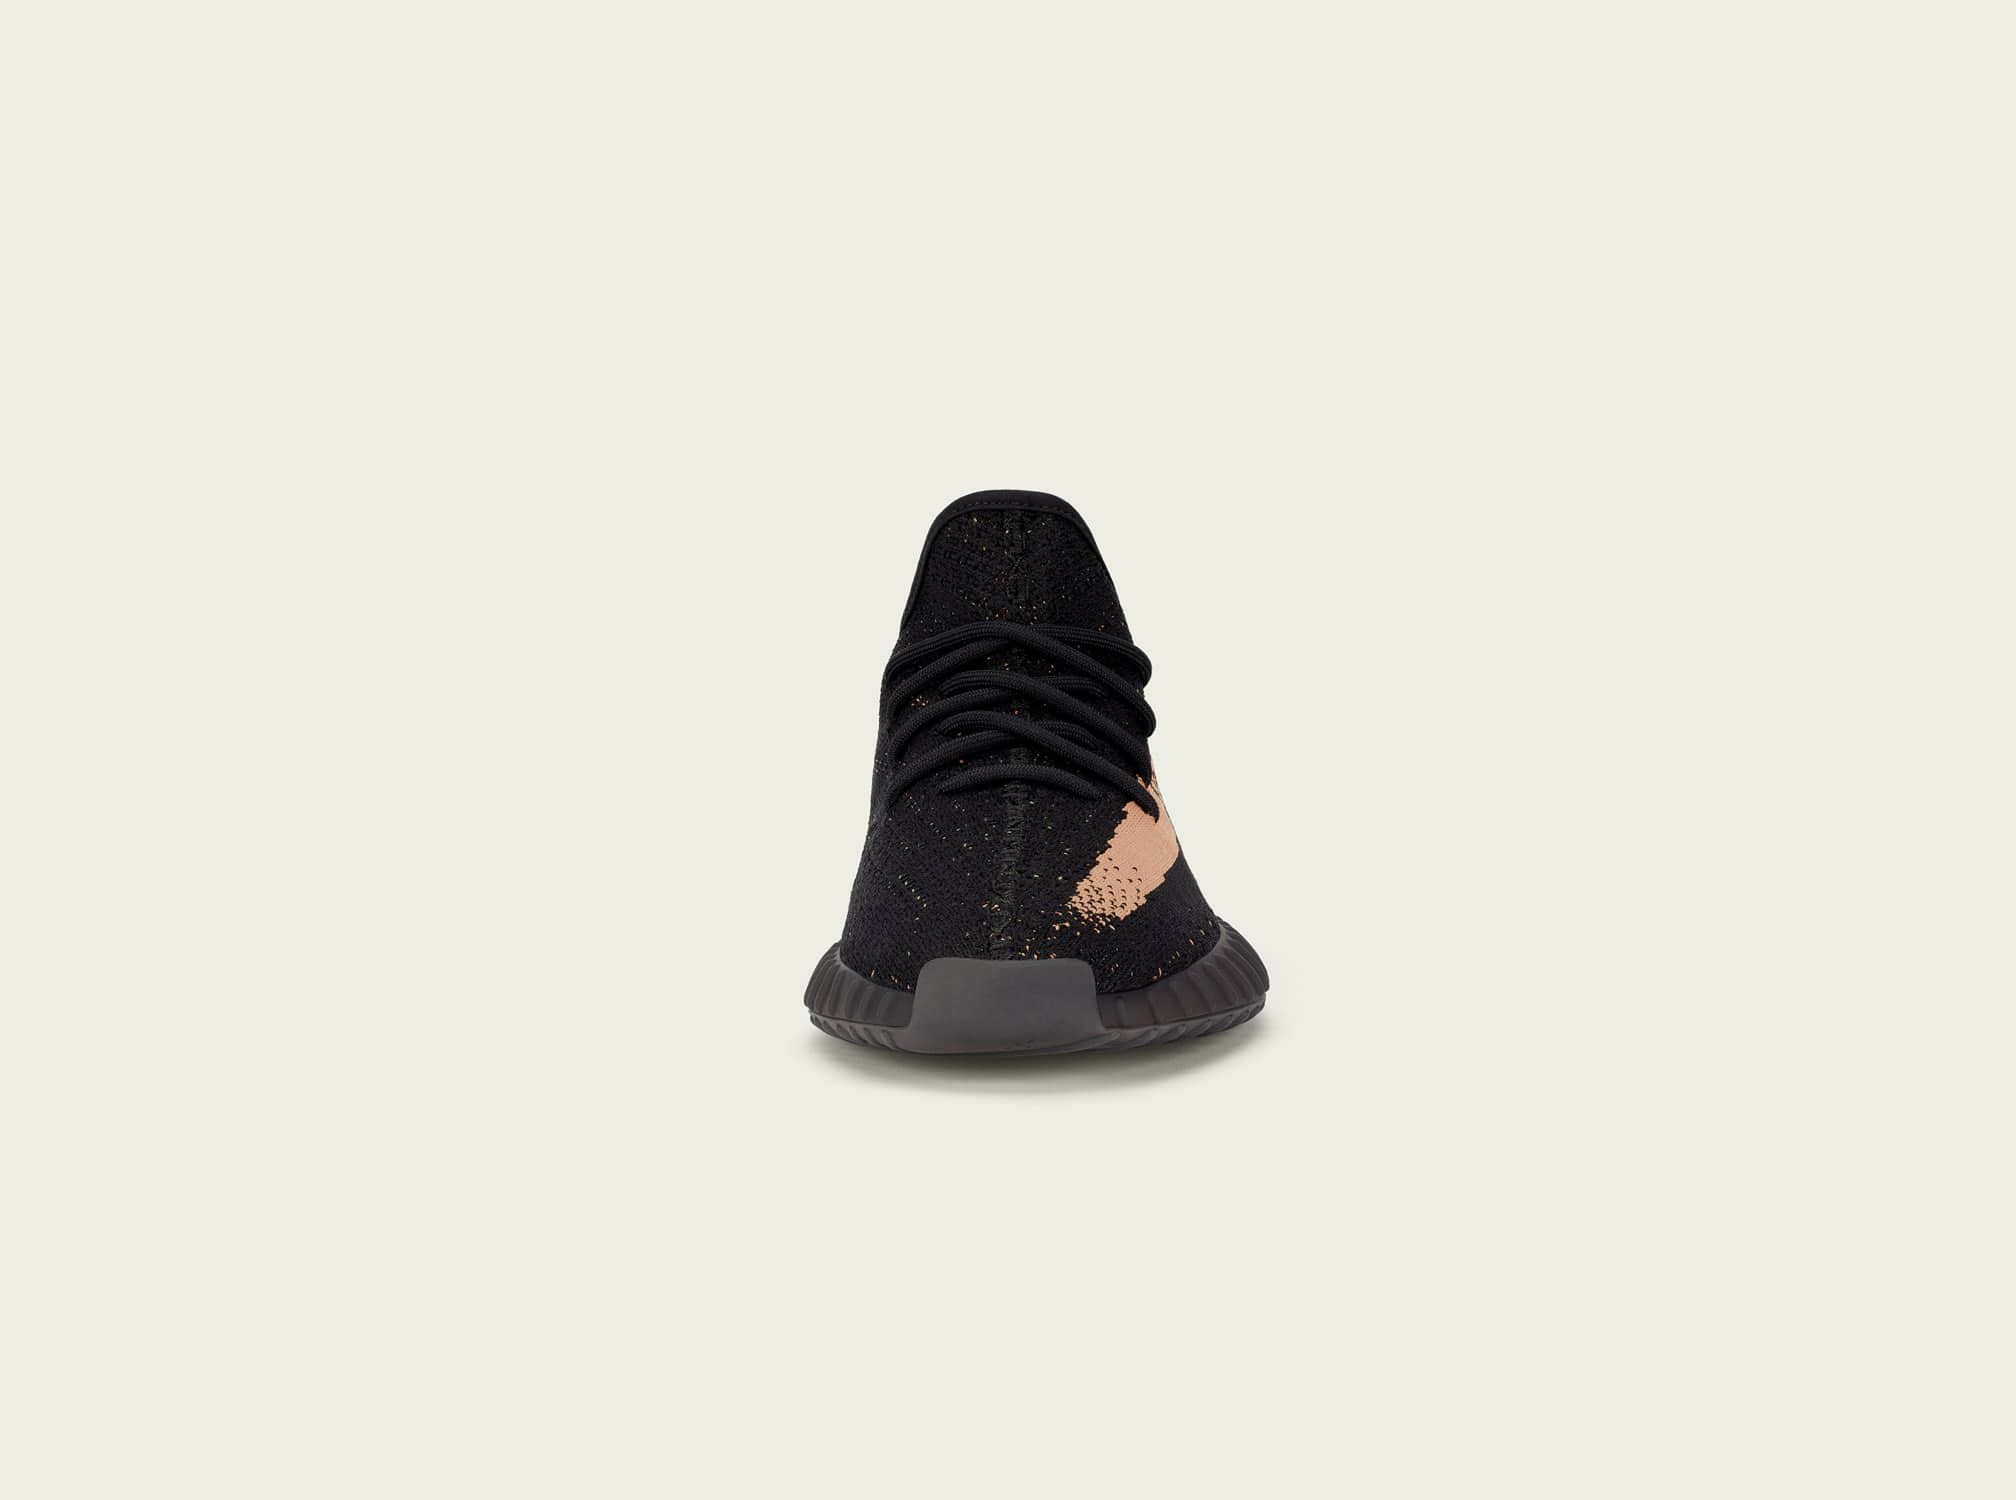 09f4d5170 david beckham yeezy ultra boost release adidas outlet locations